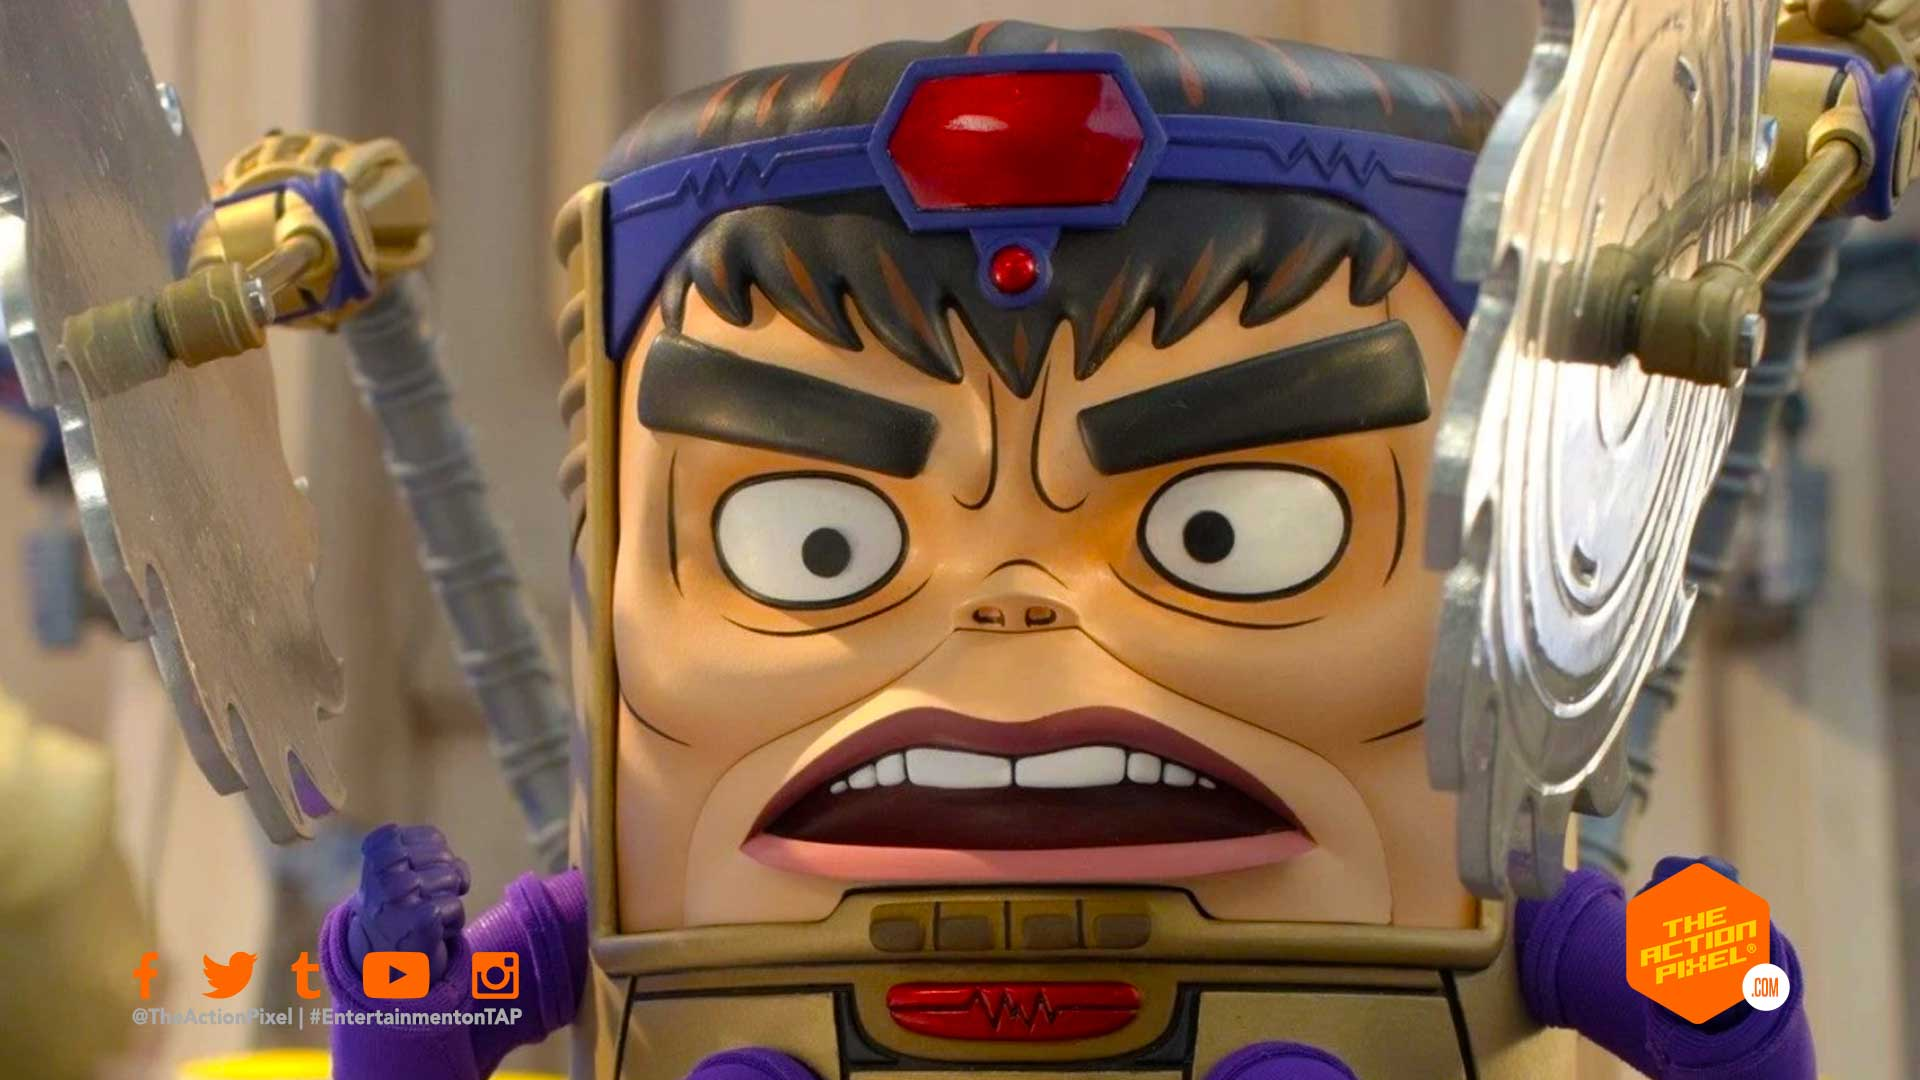 modok, hulu original , m.o.d.o.k., entertainment on tap, the action pixel, marvel's modok, marvel's M.O.D.O.K., featured,